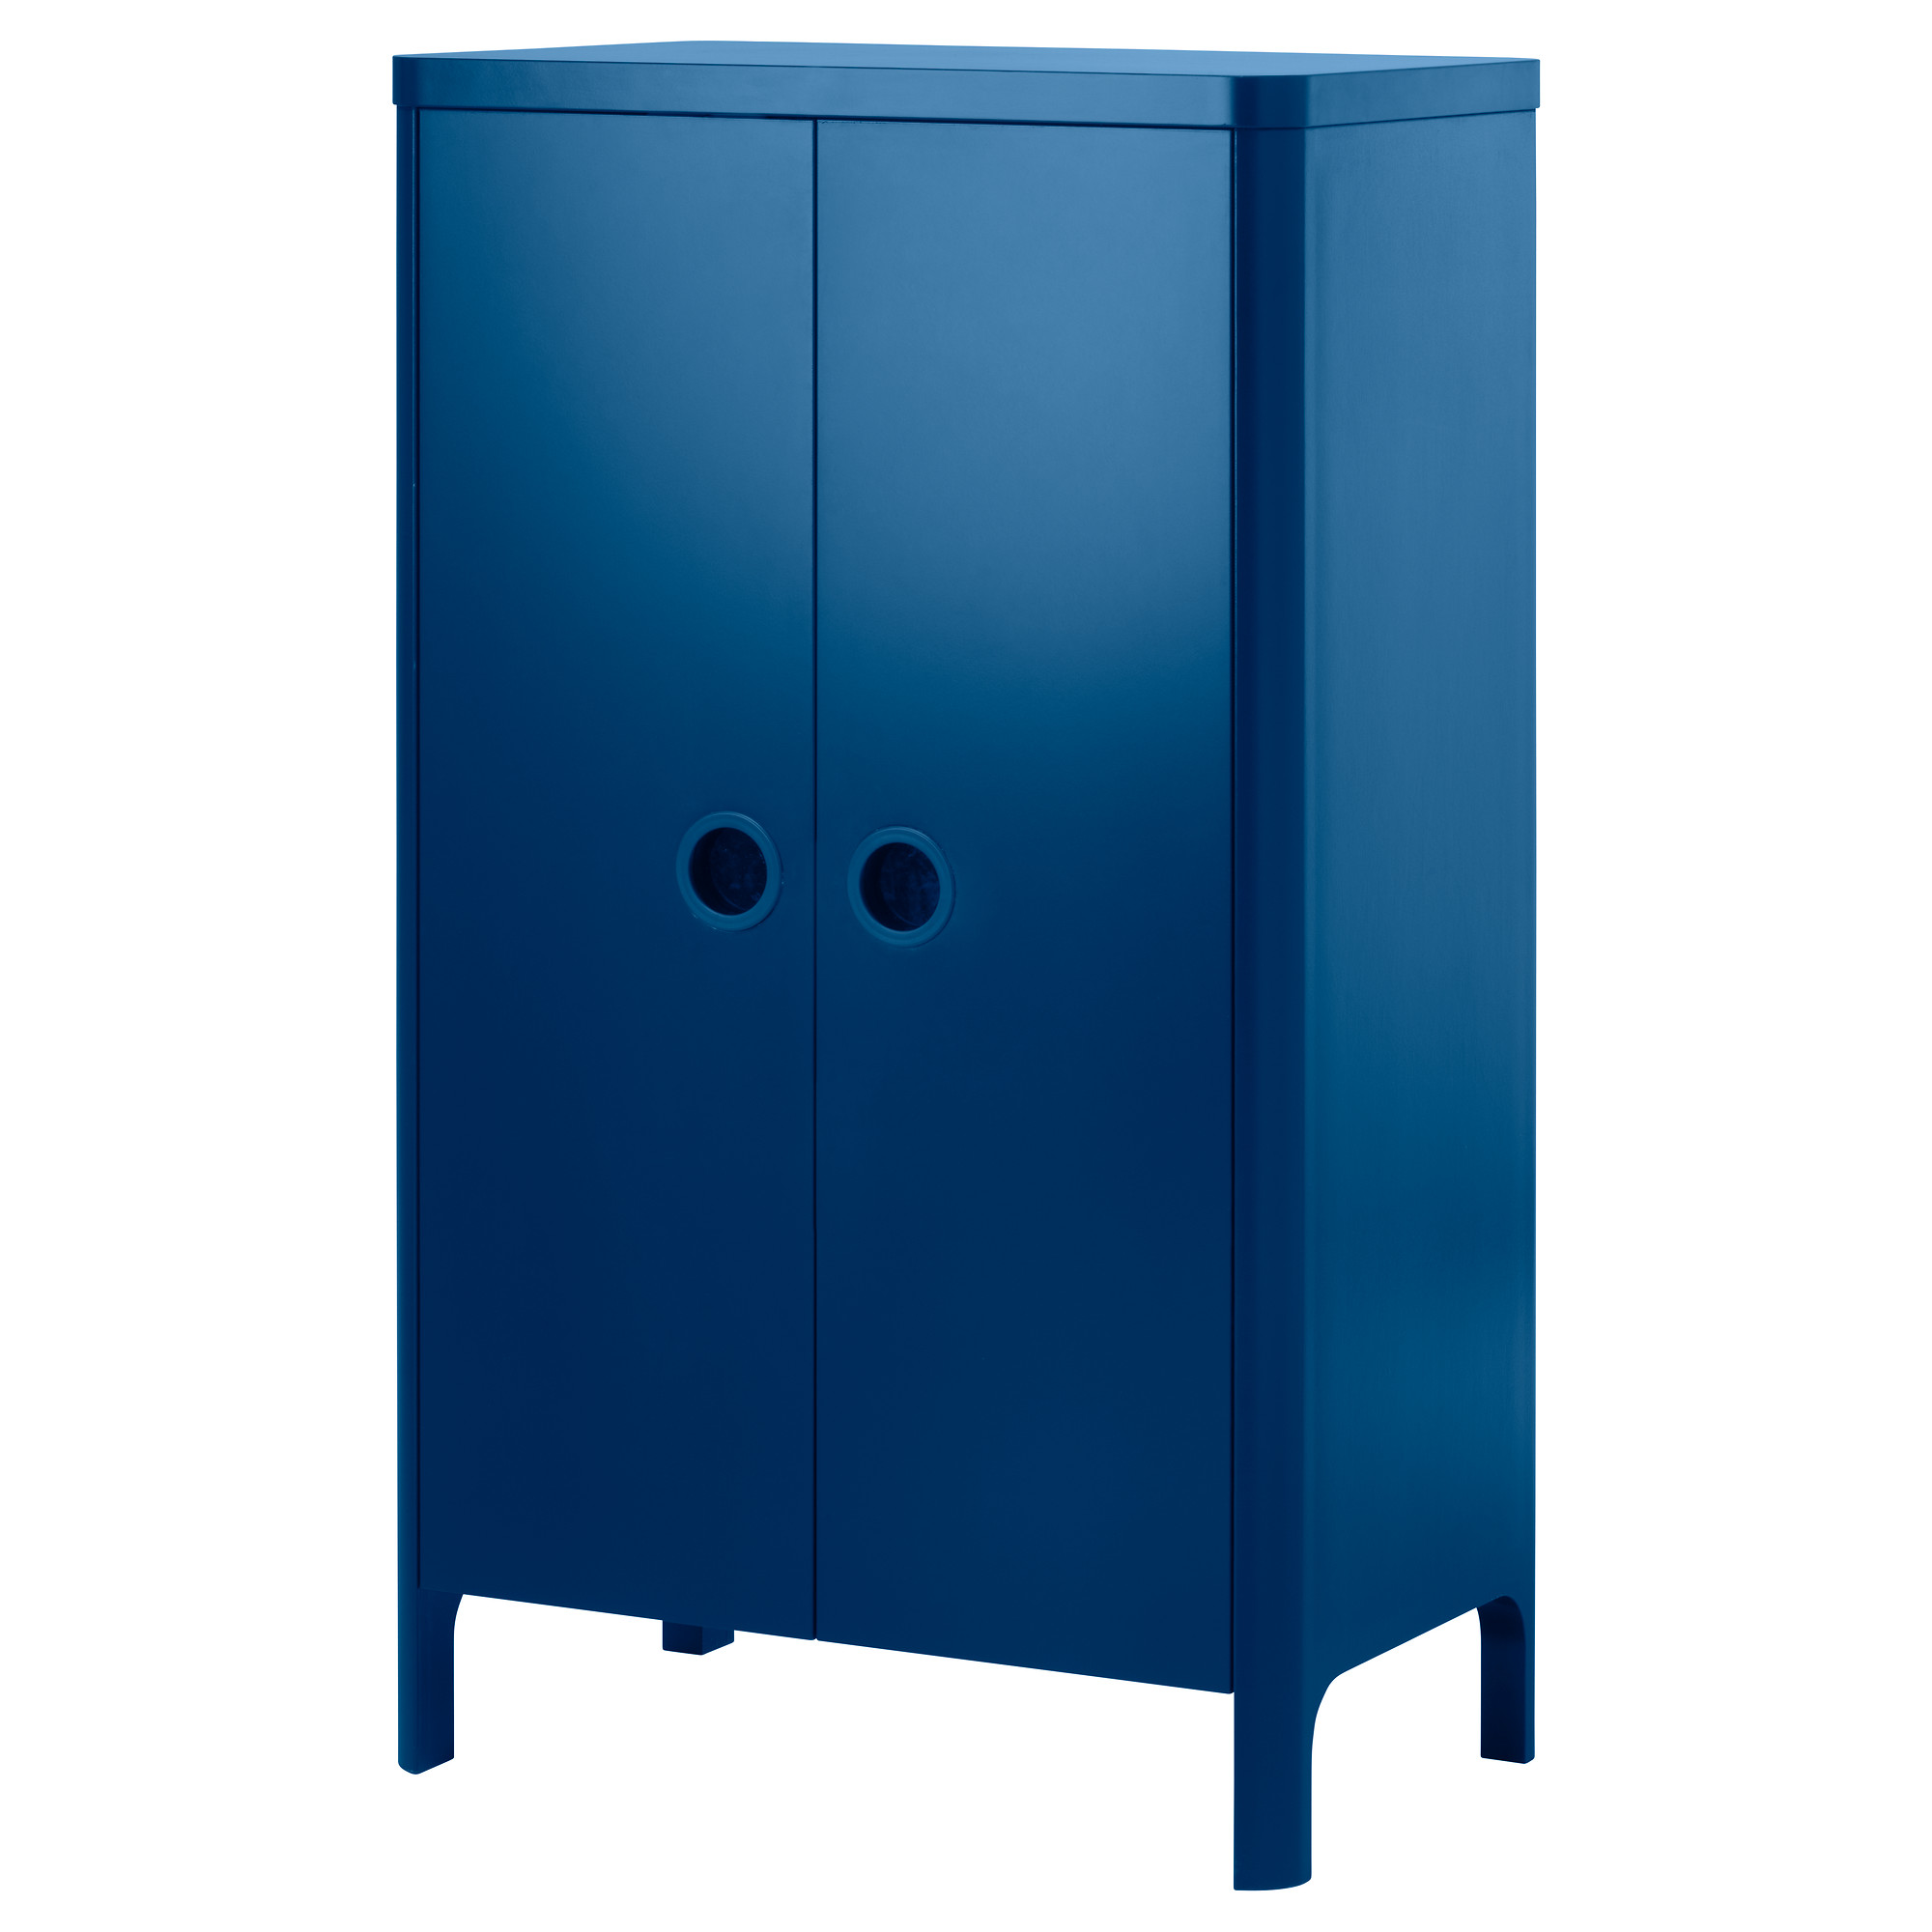 childrens wardrobe ikea busunge wardrobe you can adjust the height of the clothes rail and pgwmzgo